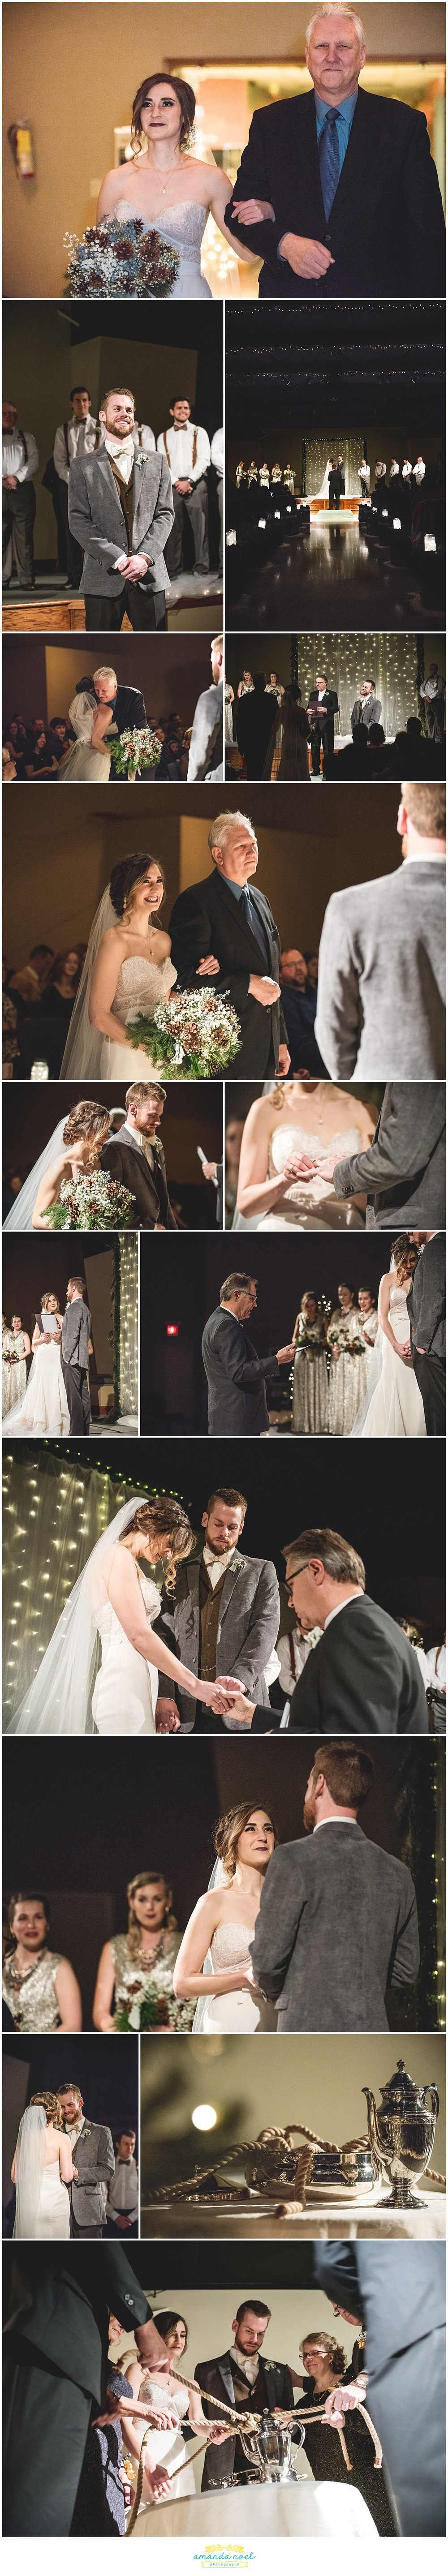 Springfield Ohio winter wedding Christmas lights church ceremony | Amanda Noel Photography